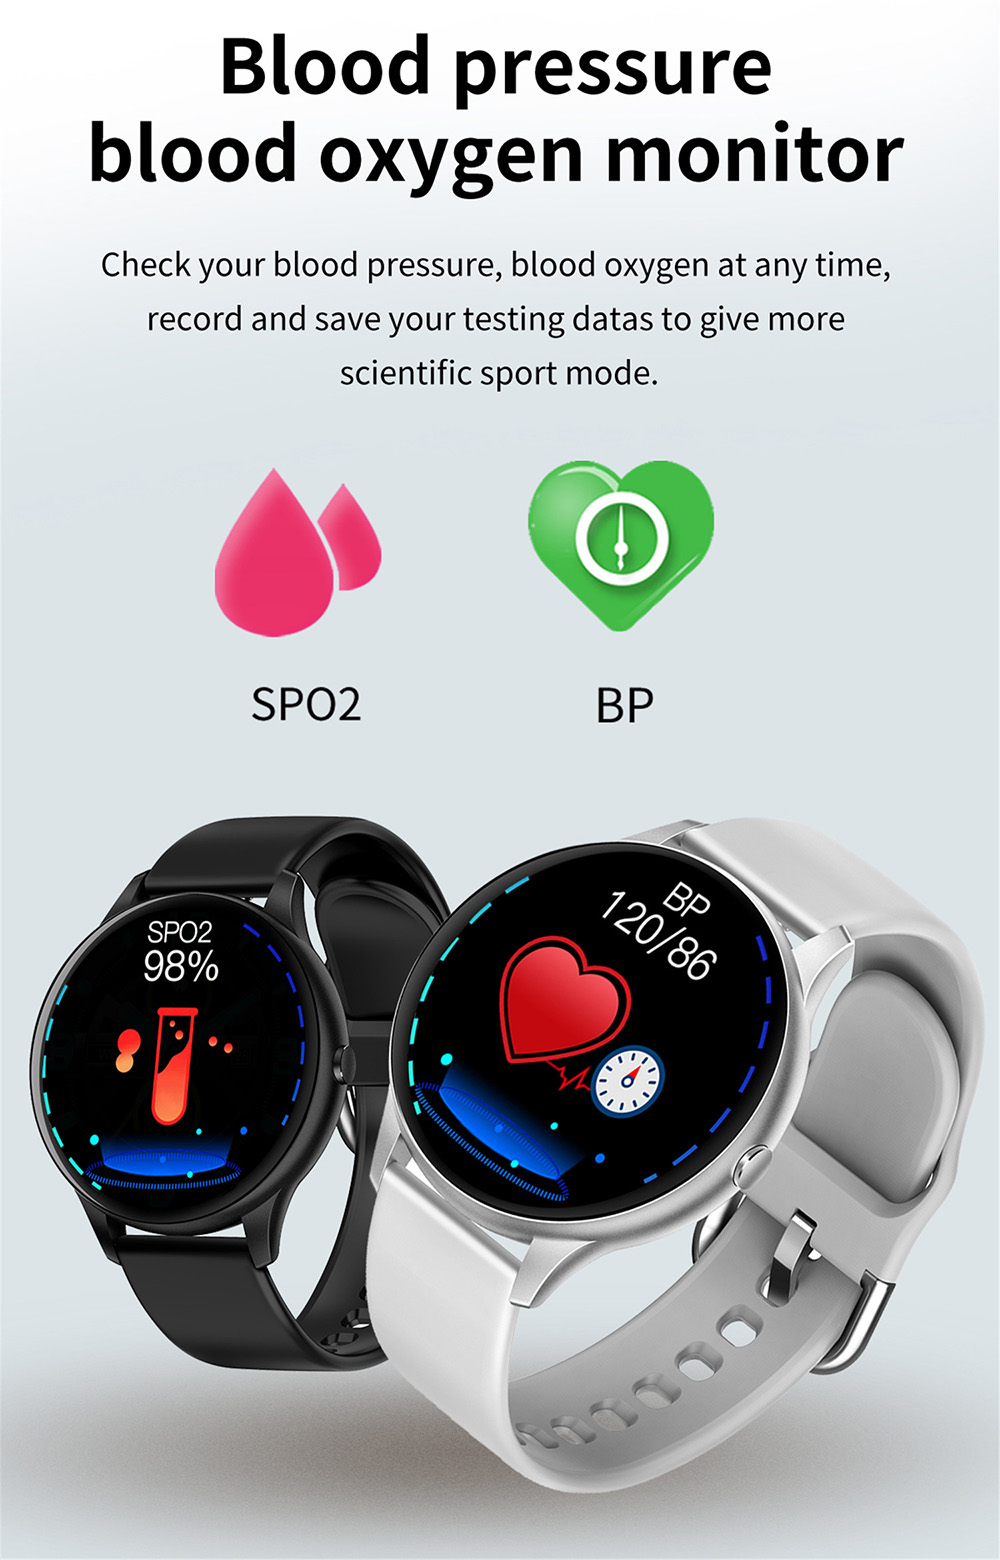 K21 1.3 inch Full Touch Round Screen Smart Watch Body Temperature Detection Heart Rate Blood Pressure Monitoring Sports Waterproof Bluetooth Health Smartwatch - Black